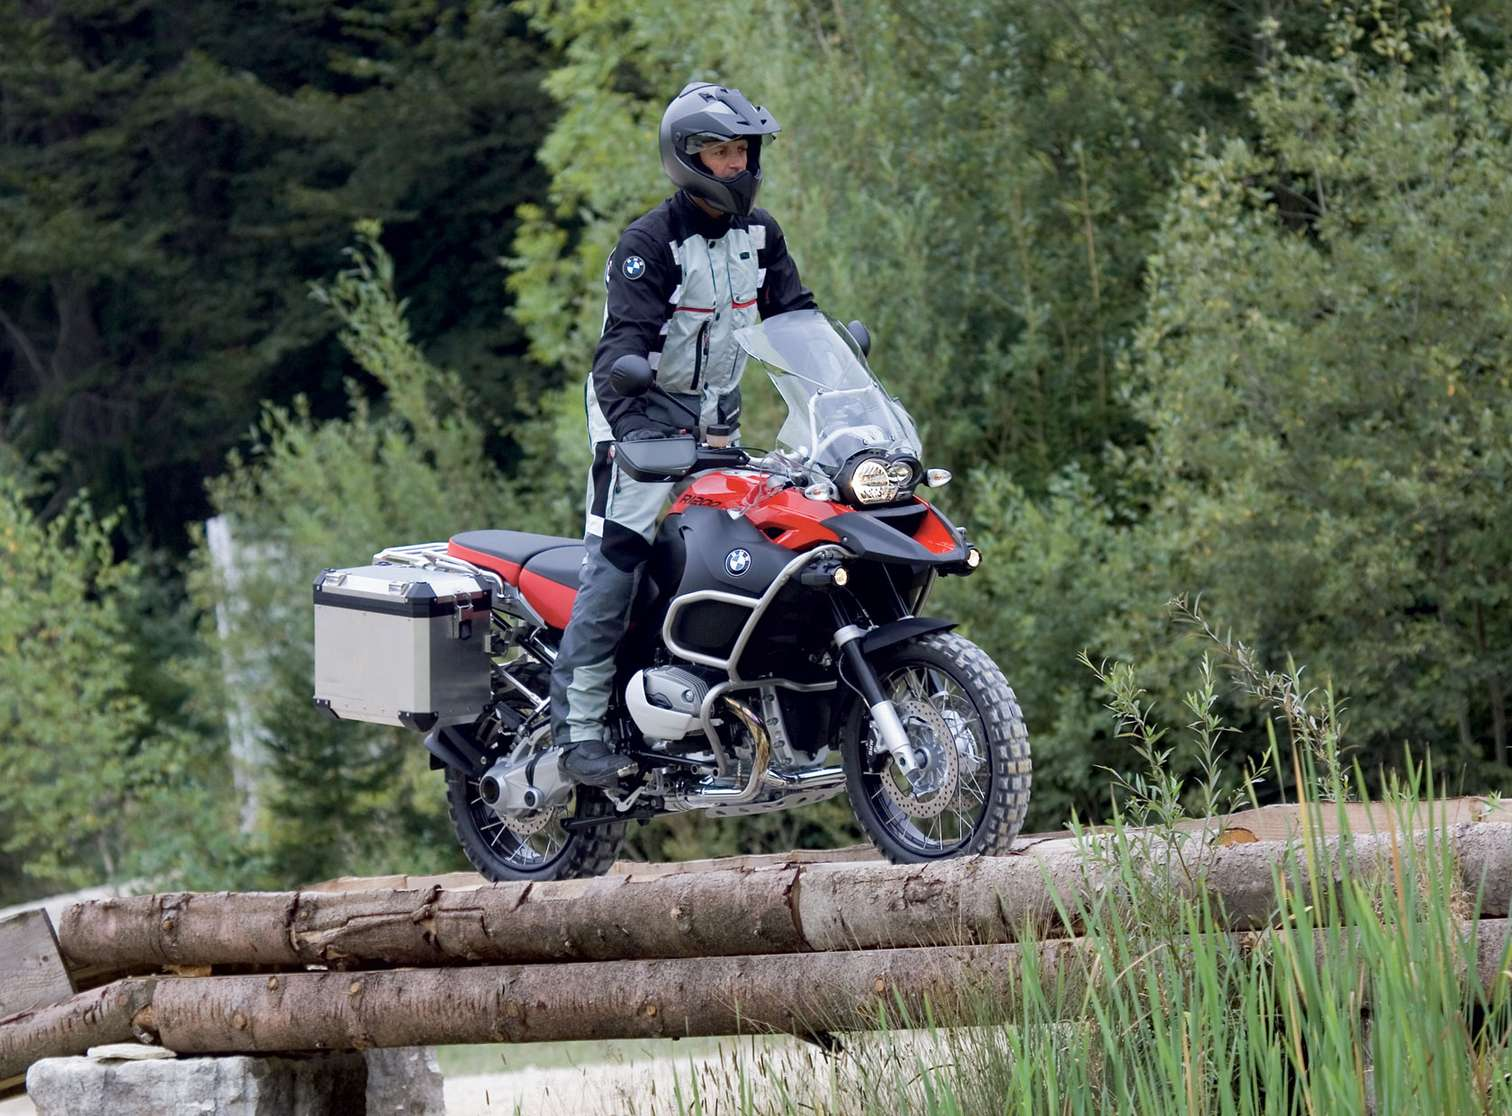 BMW R 1200 GS Adventure #8377669